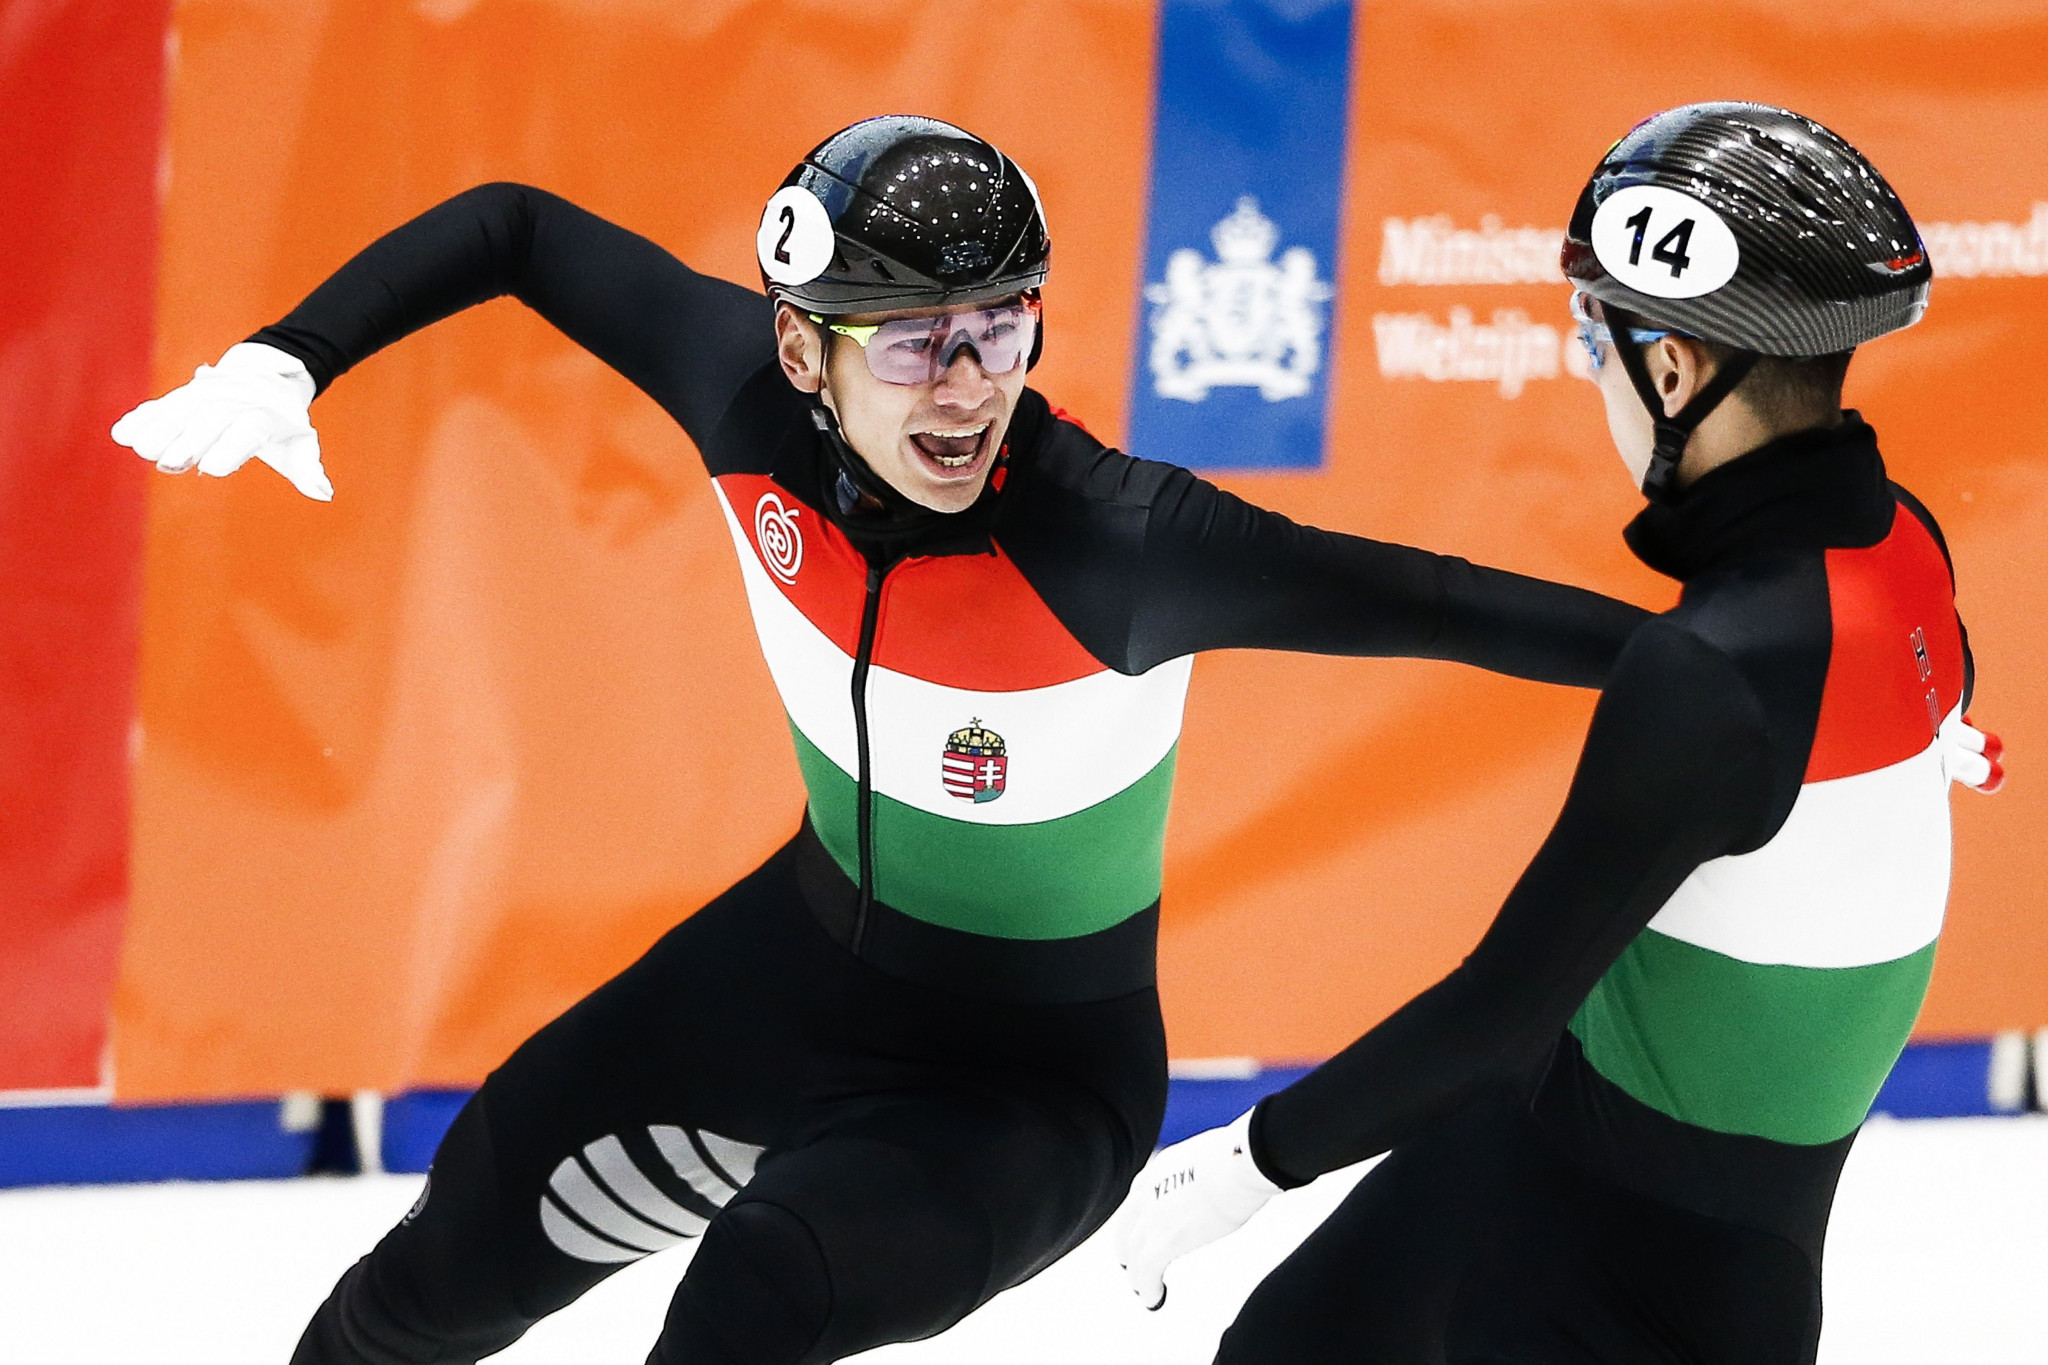 Liu brothers impress on opening day of ISU Short Track European Championships